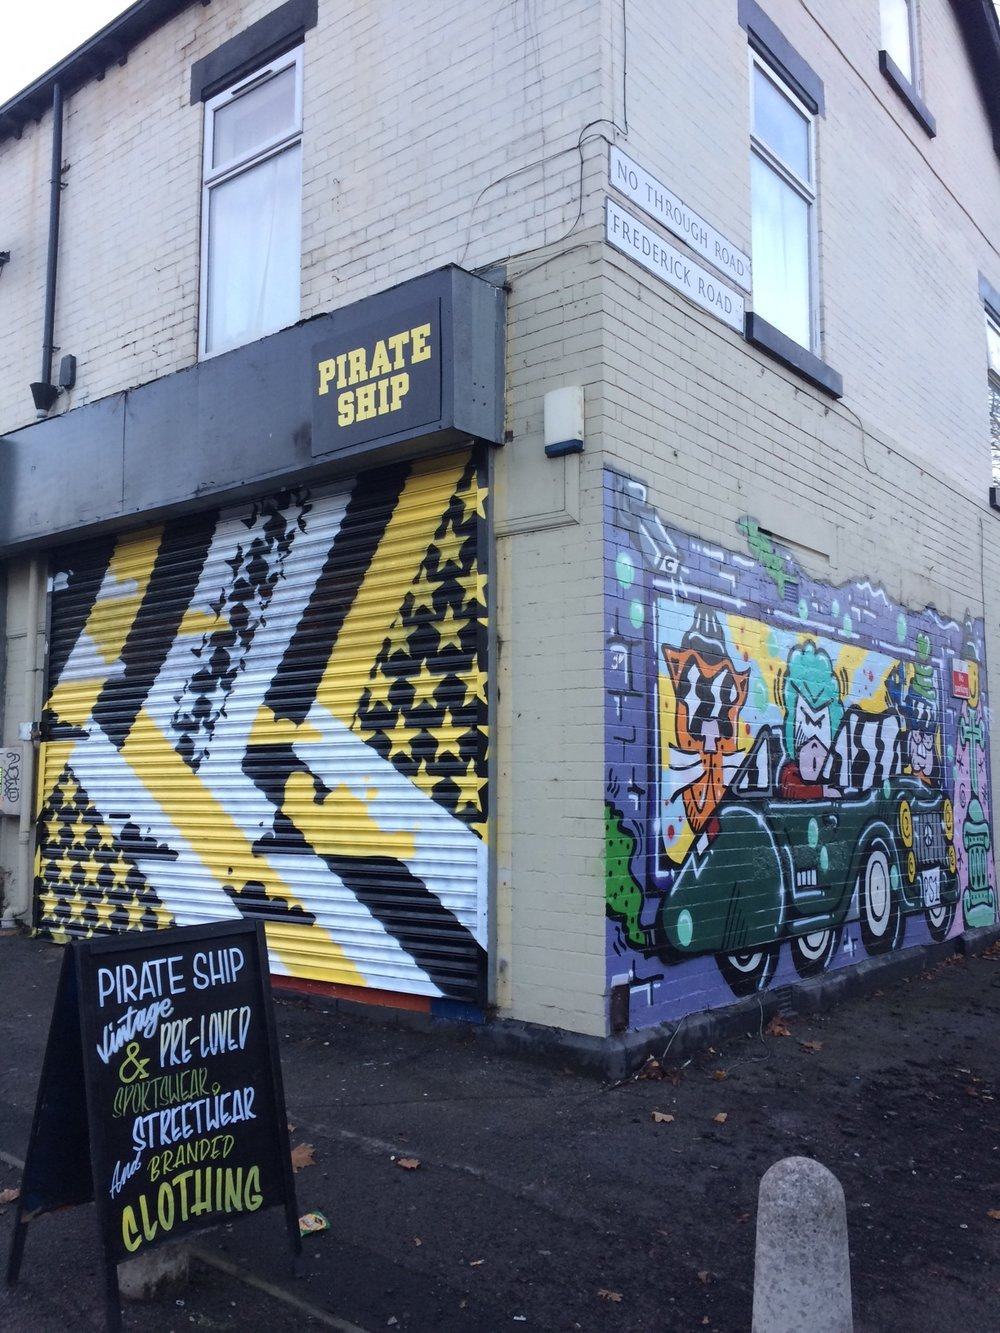 Their shutter is painted by mistone an original sheffield graffiti legend you might need to head down before opening hours to check this one out